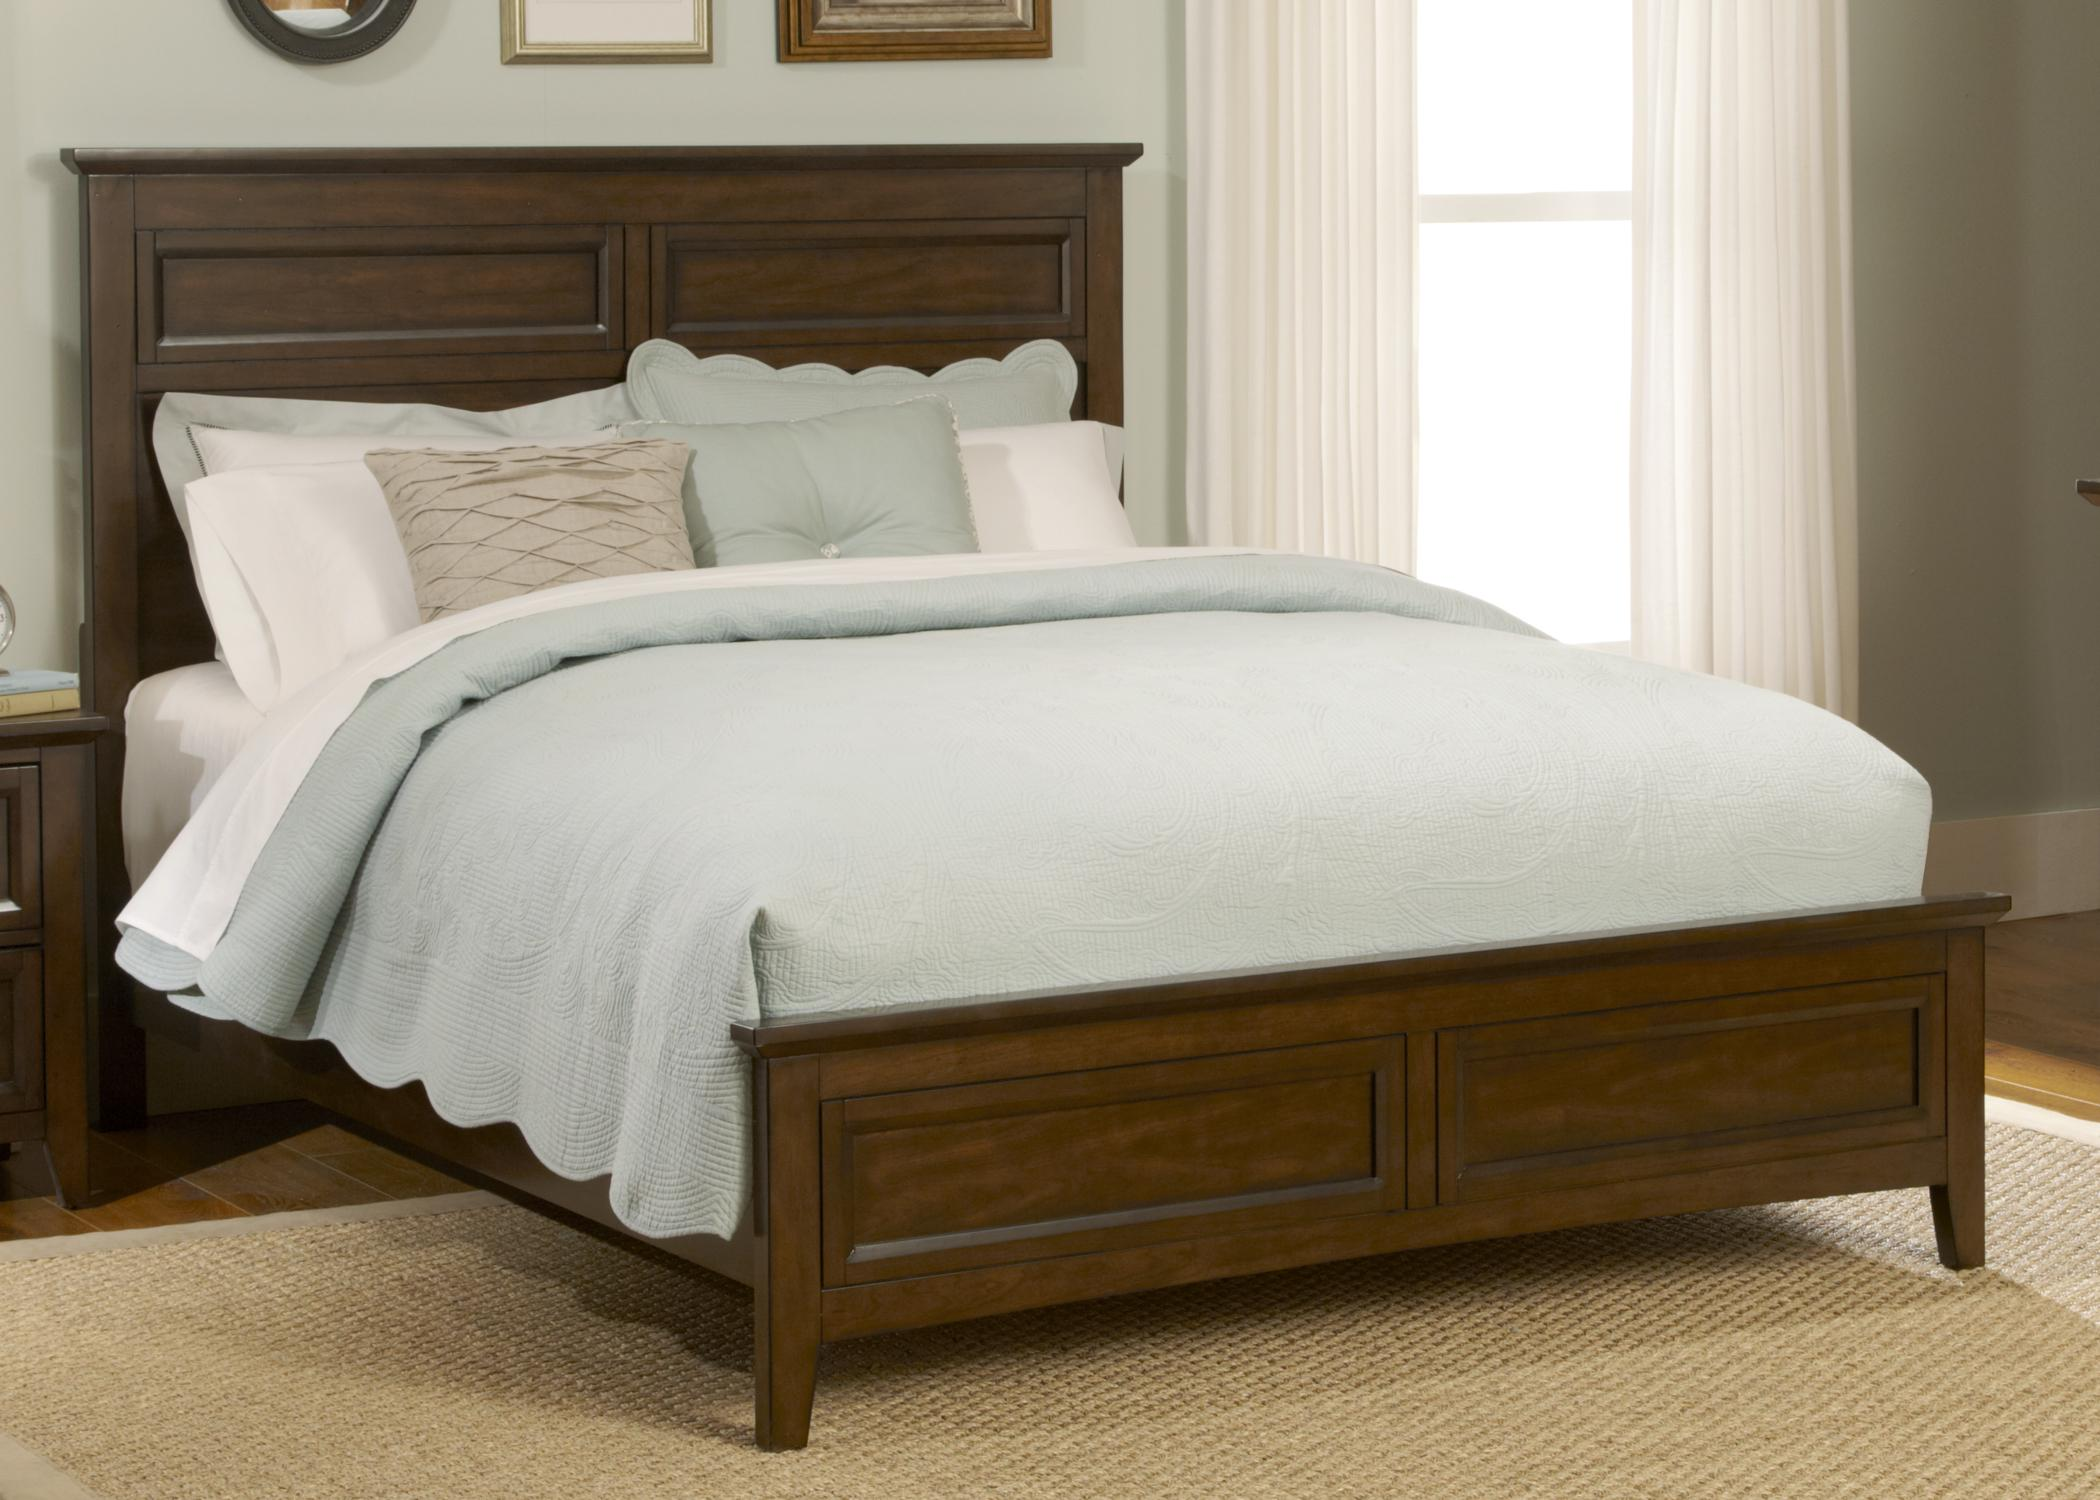 Liberty Furniture Laurel Creek King Panel Bed  - Item Number: 461-BR-SET65